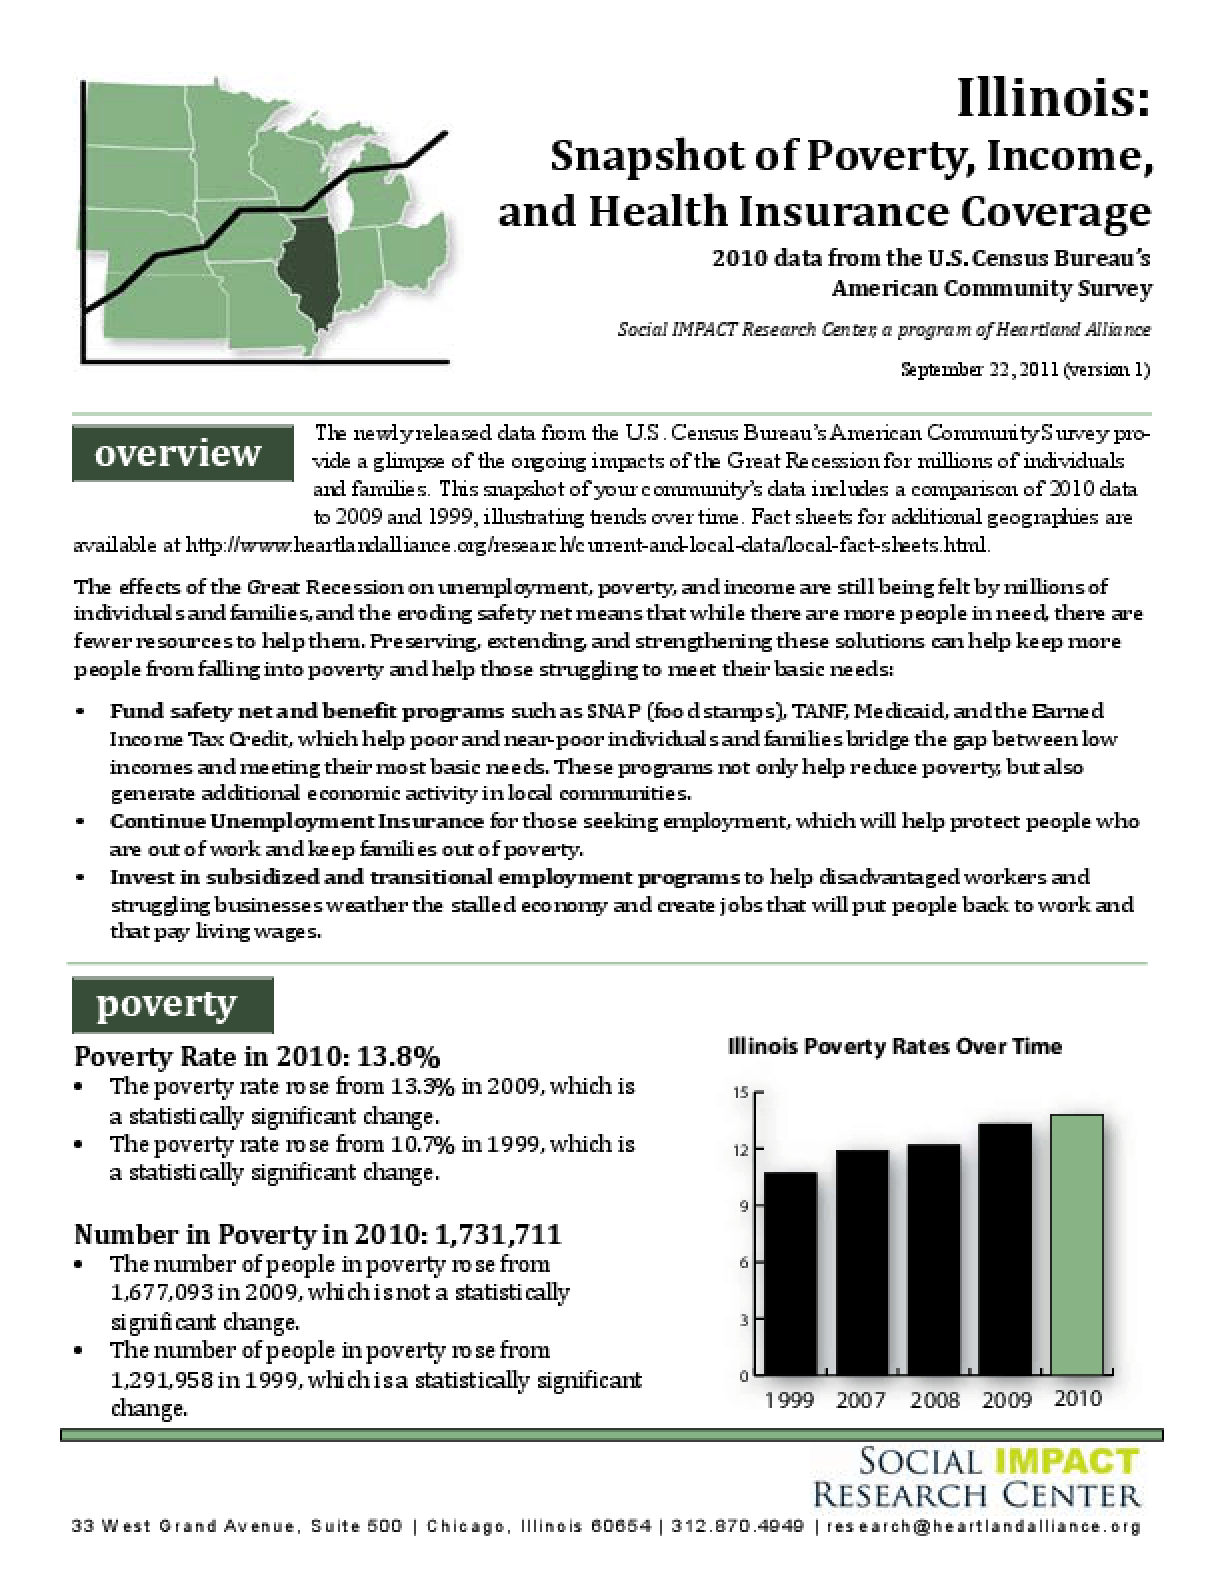 Illinois: Snapshot of Poverty, Income, and Health Insurance Coverage, 2010 Data from the U.S. Census Bureau's American Community Survey